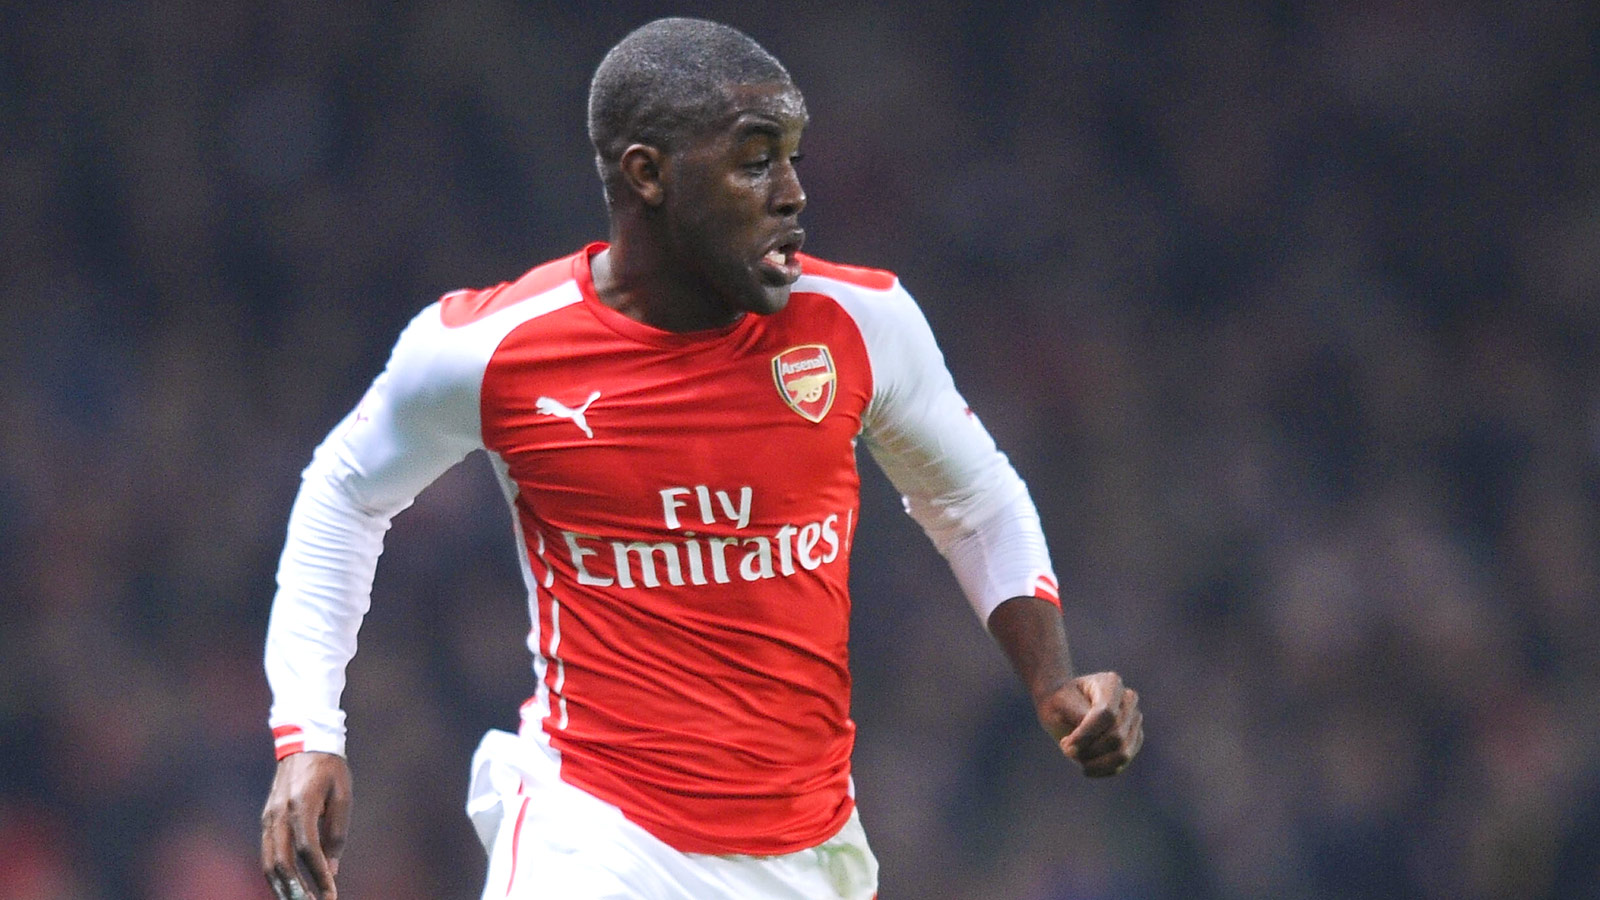 Arsenal criticised as a 'difficult club to deal with' over Campbell